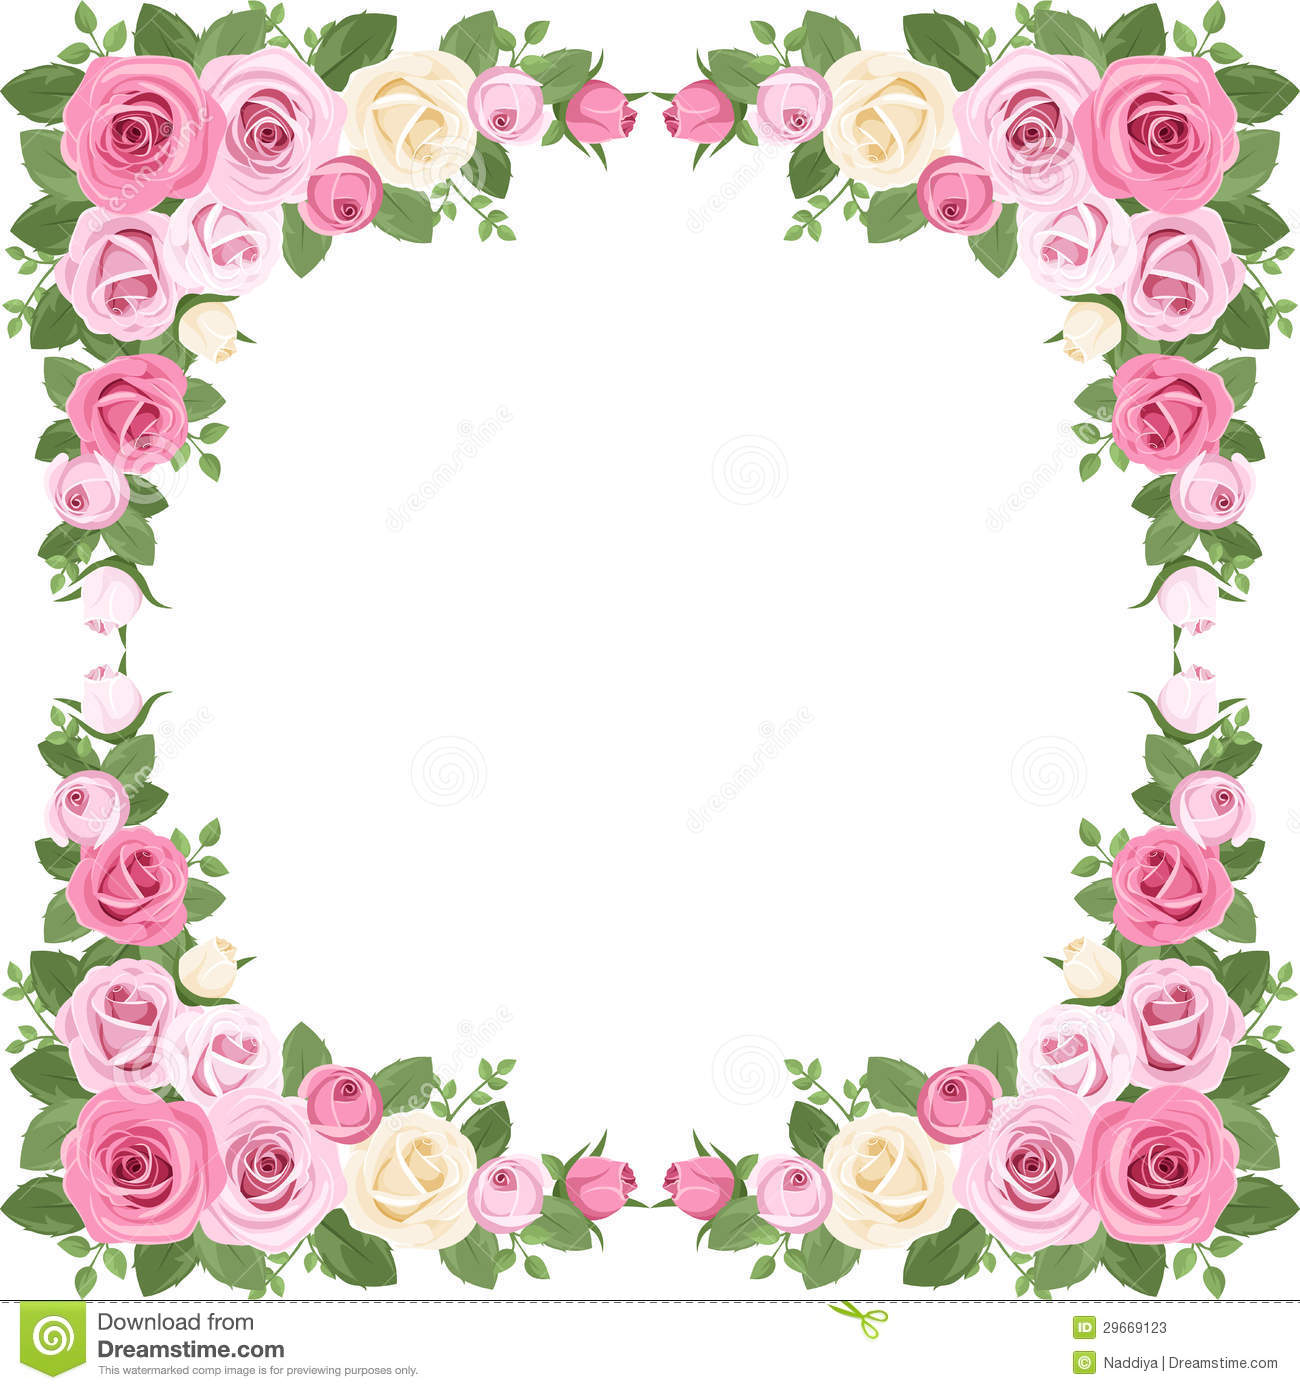 13 Rose Border Vector Images - Rose Border Vector Free ...